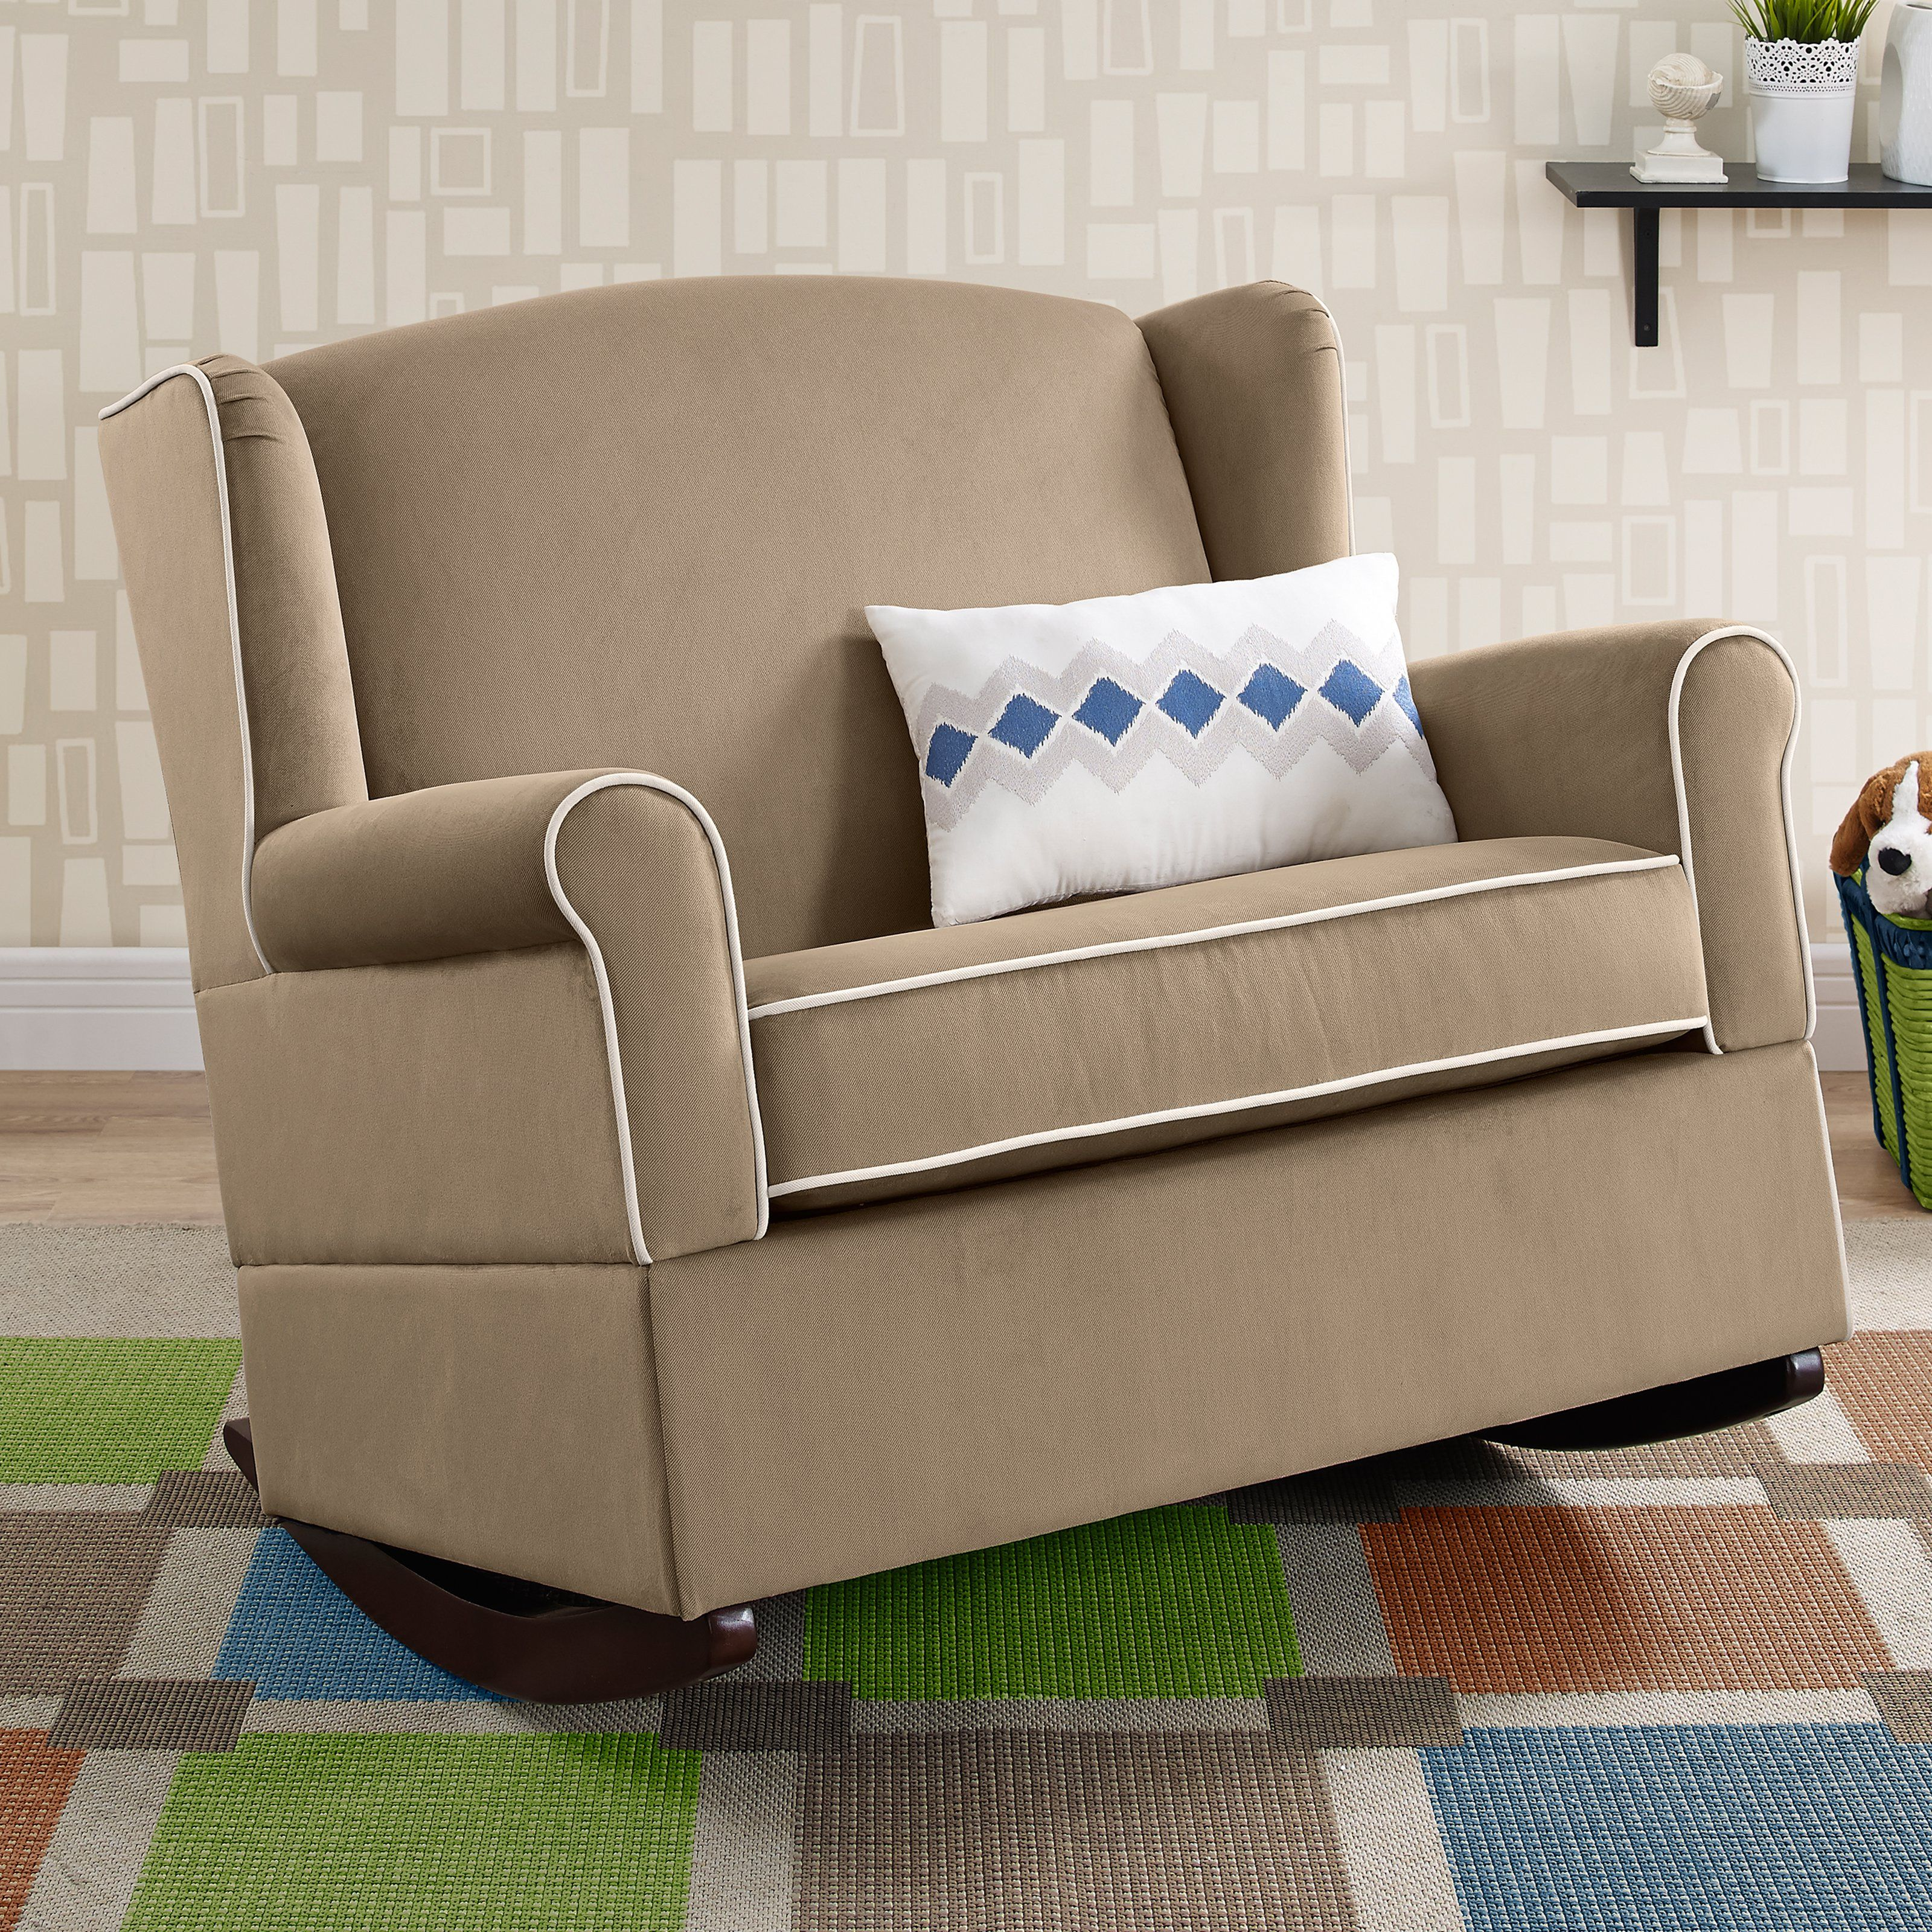 Baby Relax Lainey Wingback Chair And A Half Rocker From Hayneedle Com Chair And A Half Dorel Living Amish Rocking Chairs